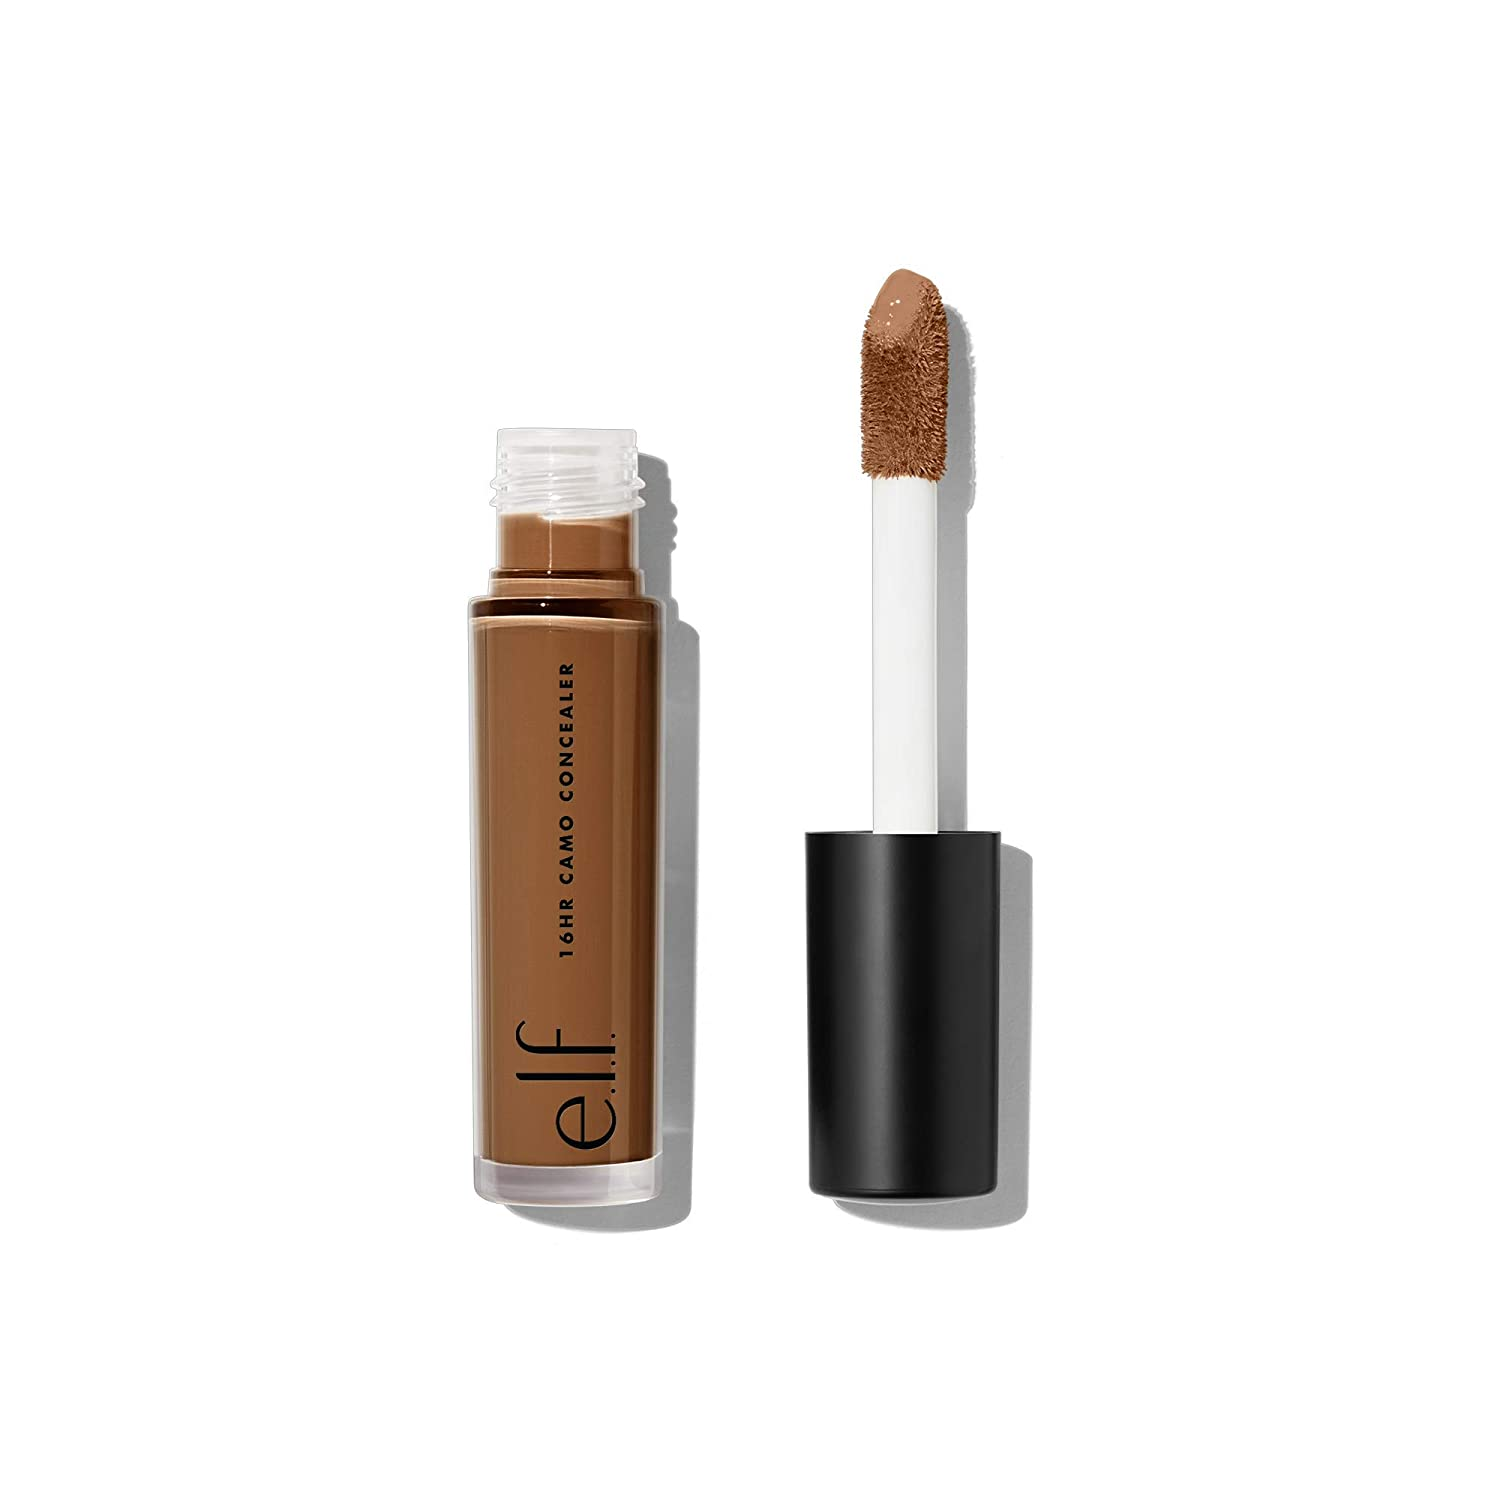 e.l.f, 16HR Camo Concealer, Full Coverage, Lightweight, Conceals, Corrects, Contours, Highlights, Rich Chocolate, Dries Matte, 6 Shades + 27 Colors, Ideal for All Skin Types, 0.203 Fl Oz